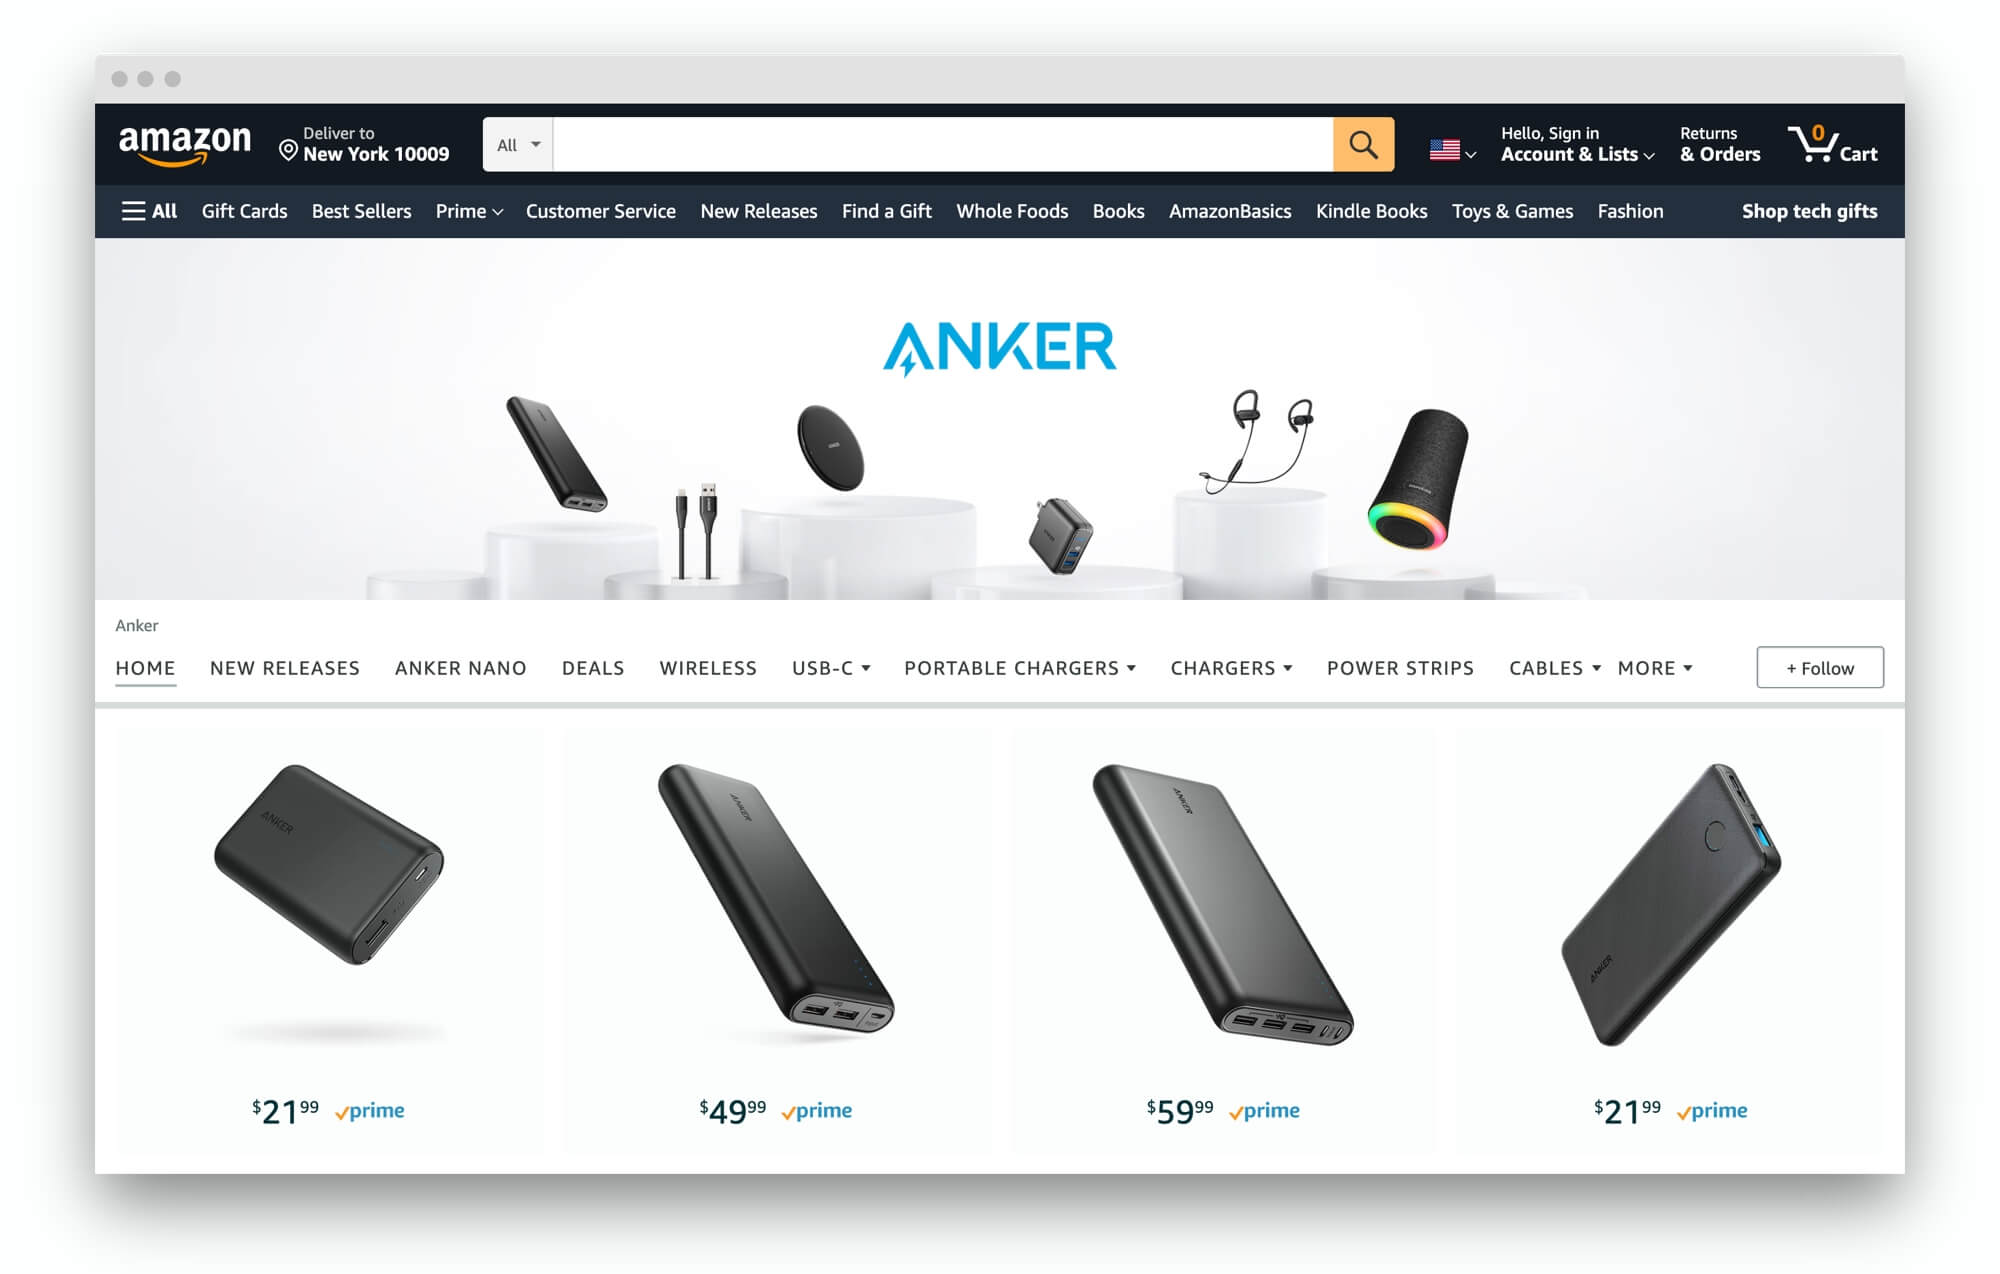 Anker at Amazon